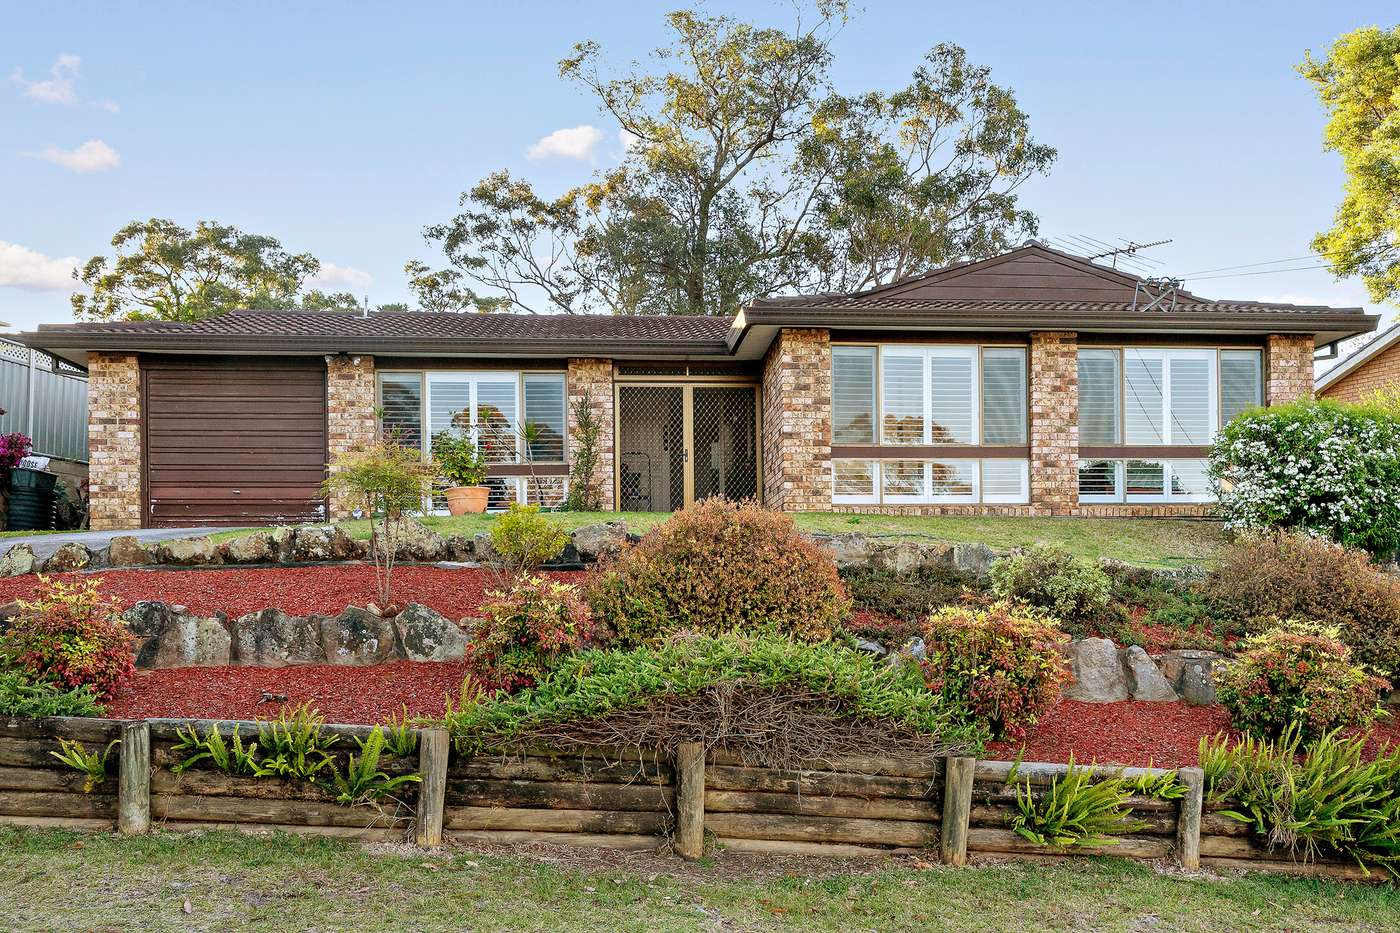 Main view of Homely house listing, 38 Muru Avenue, Winmalee, NSW 2777